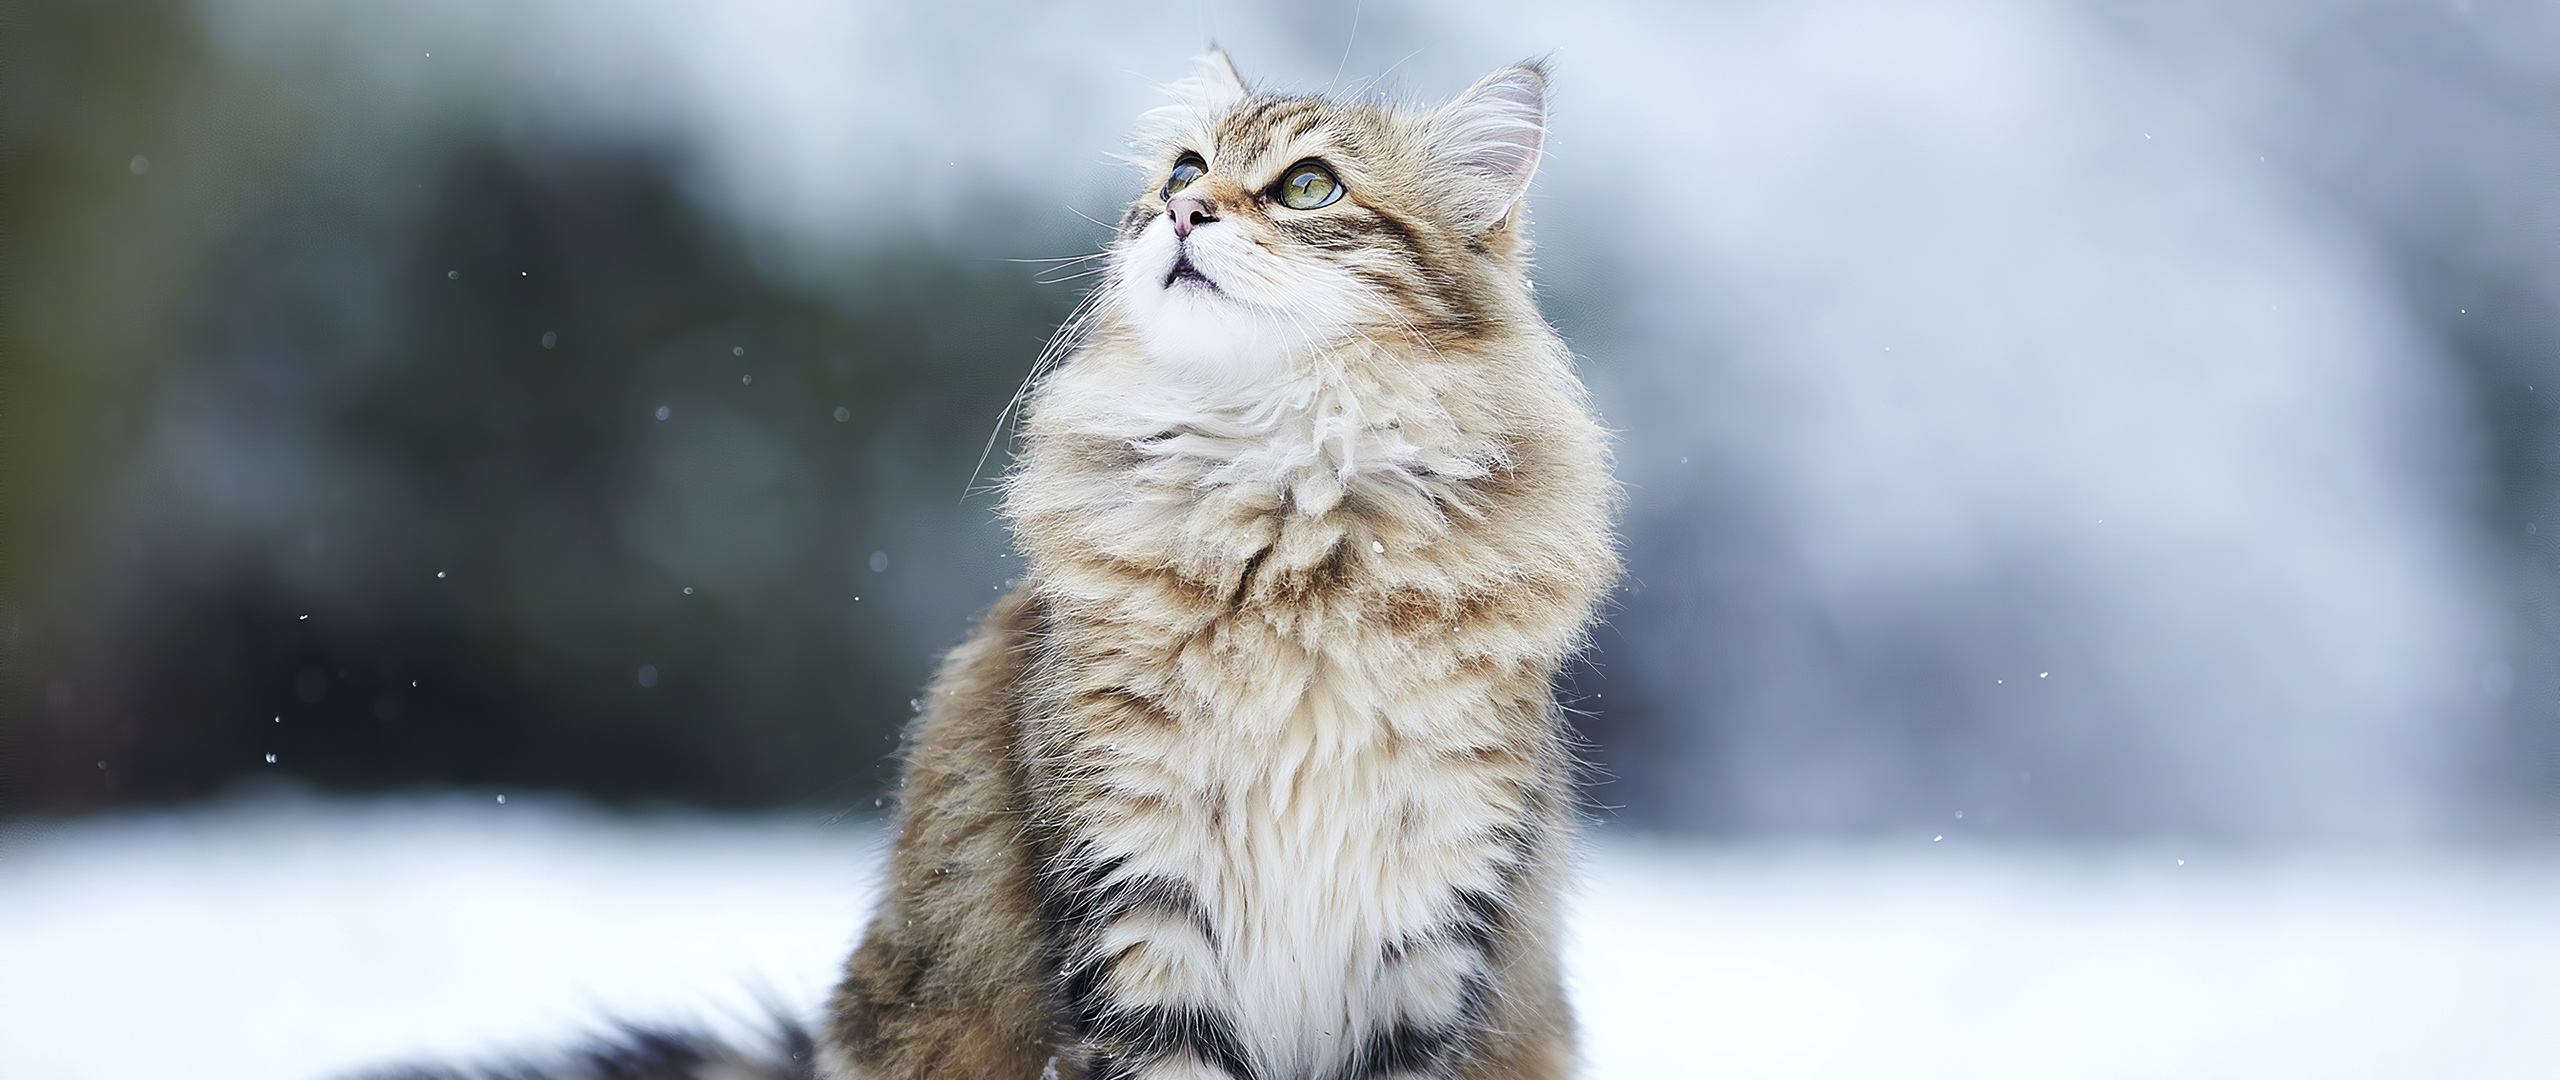 cat-in-winter-bm.jpg